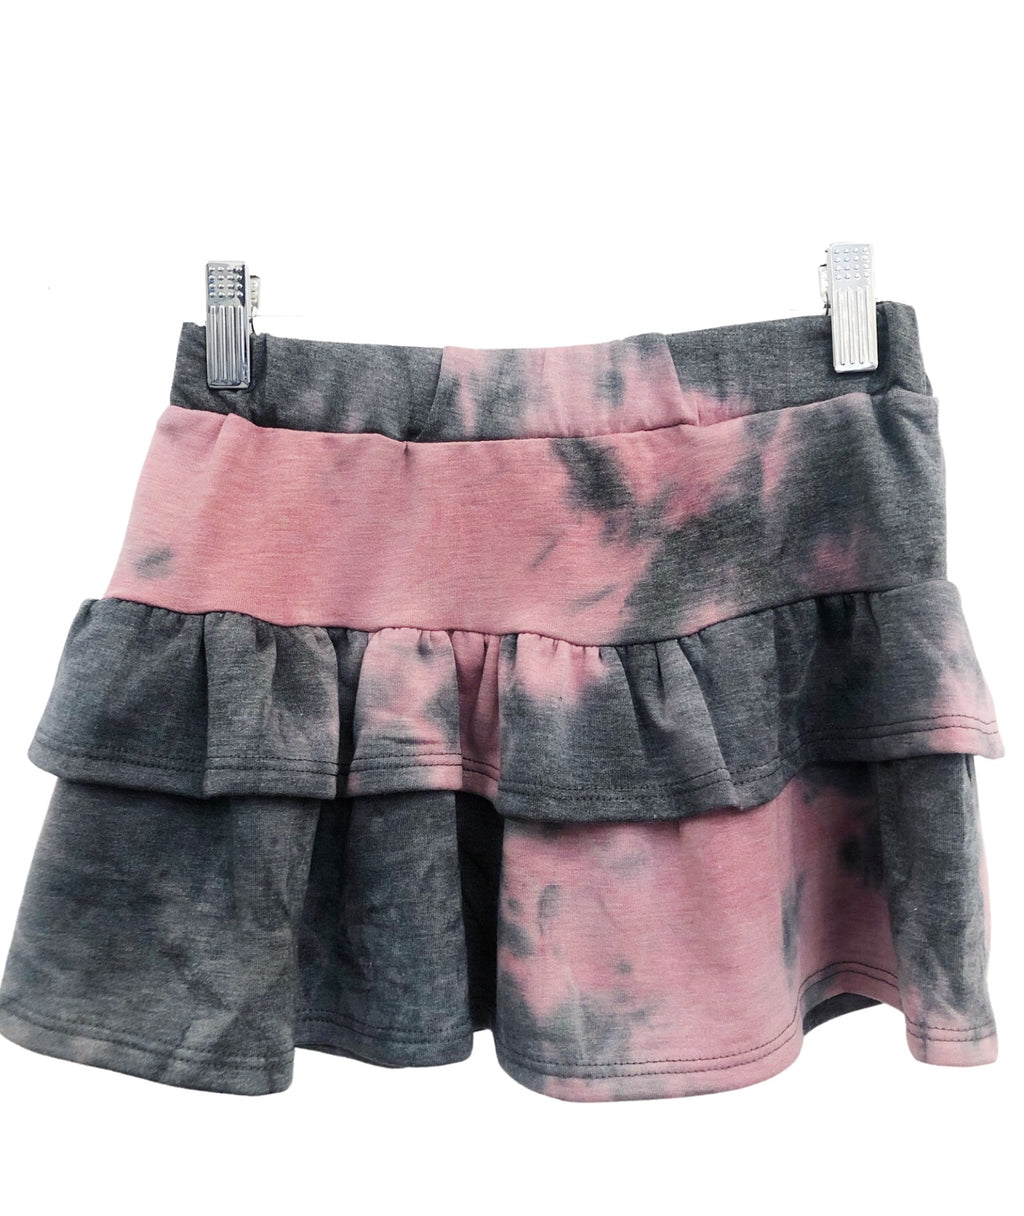 Sparkle by Stoopher Girls Pink/Black Tie Dye Skirt